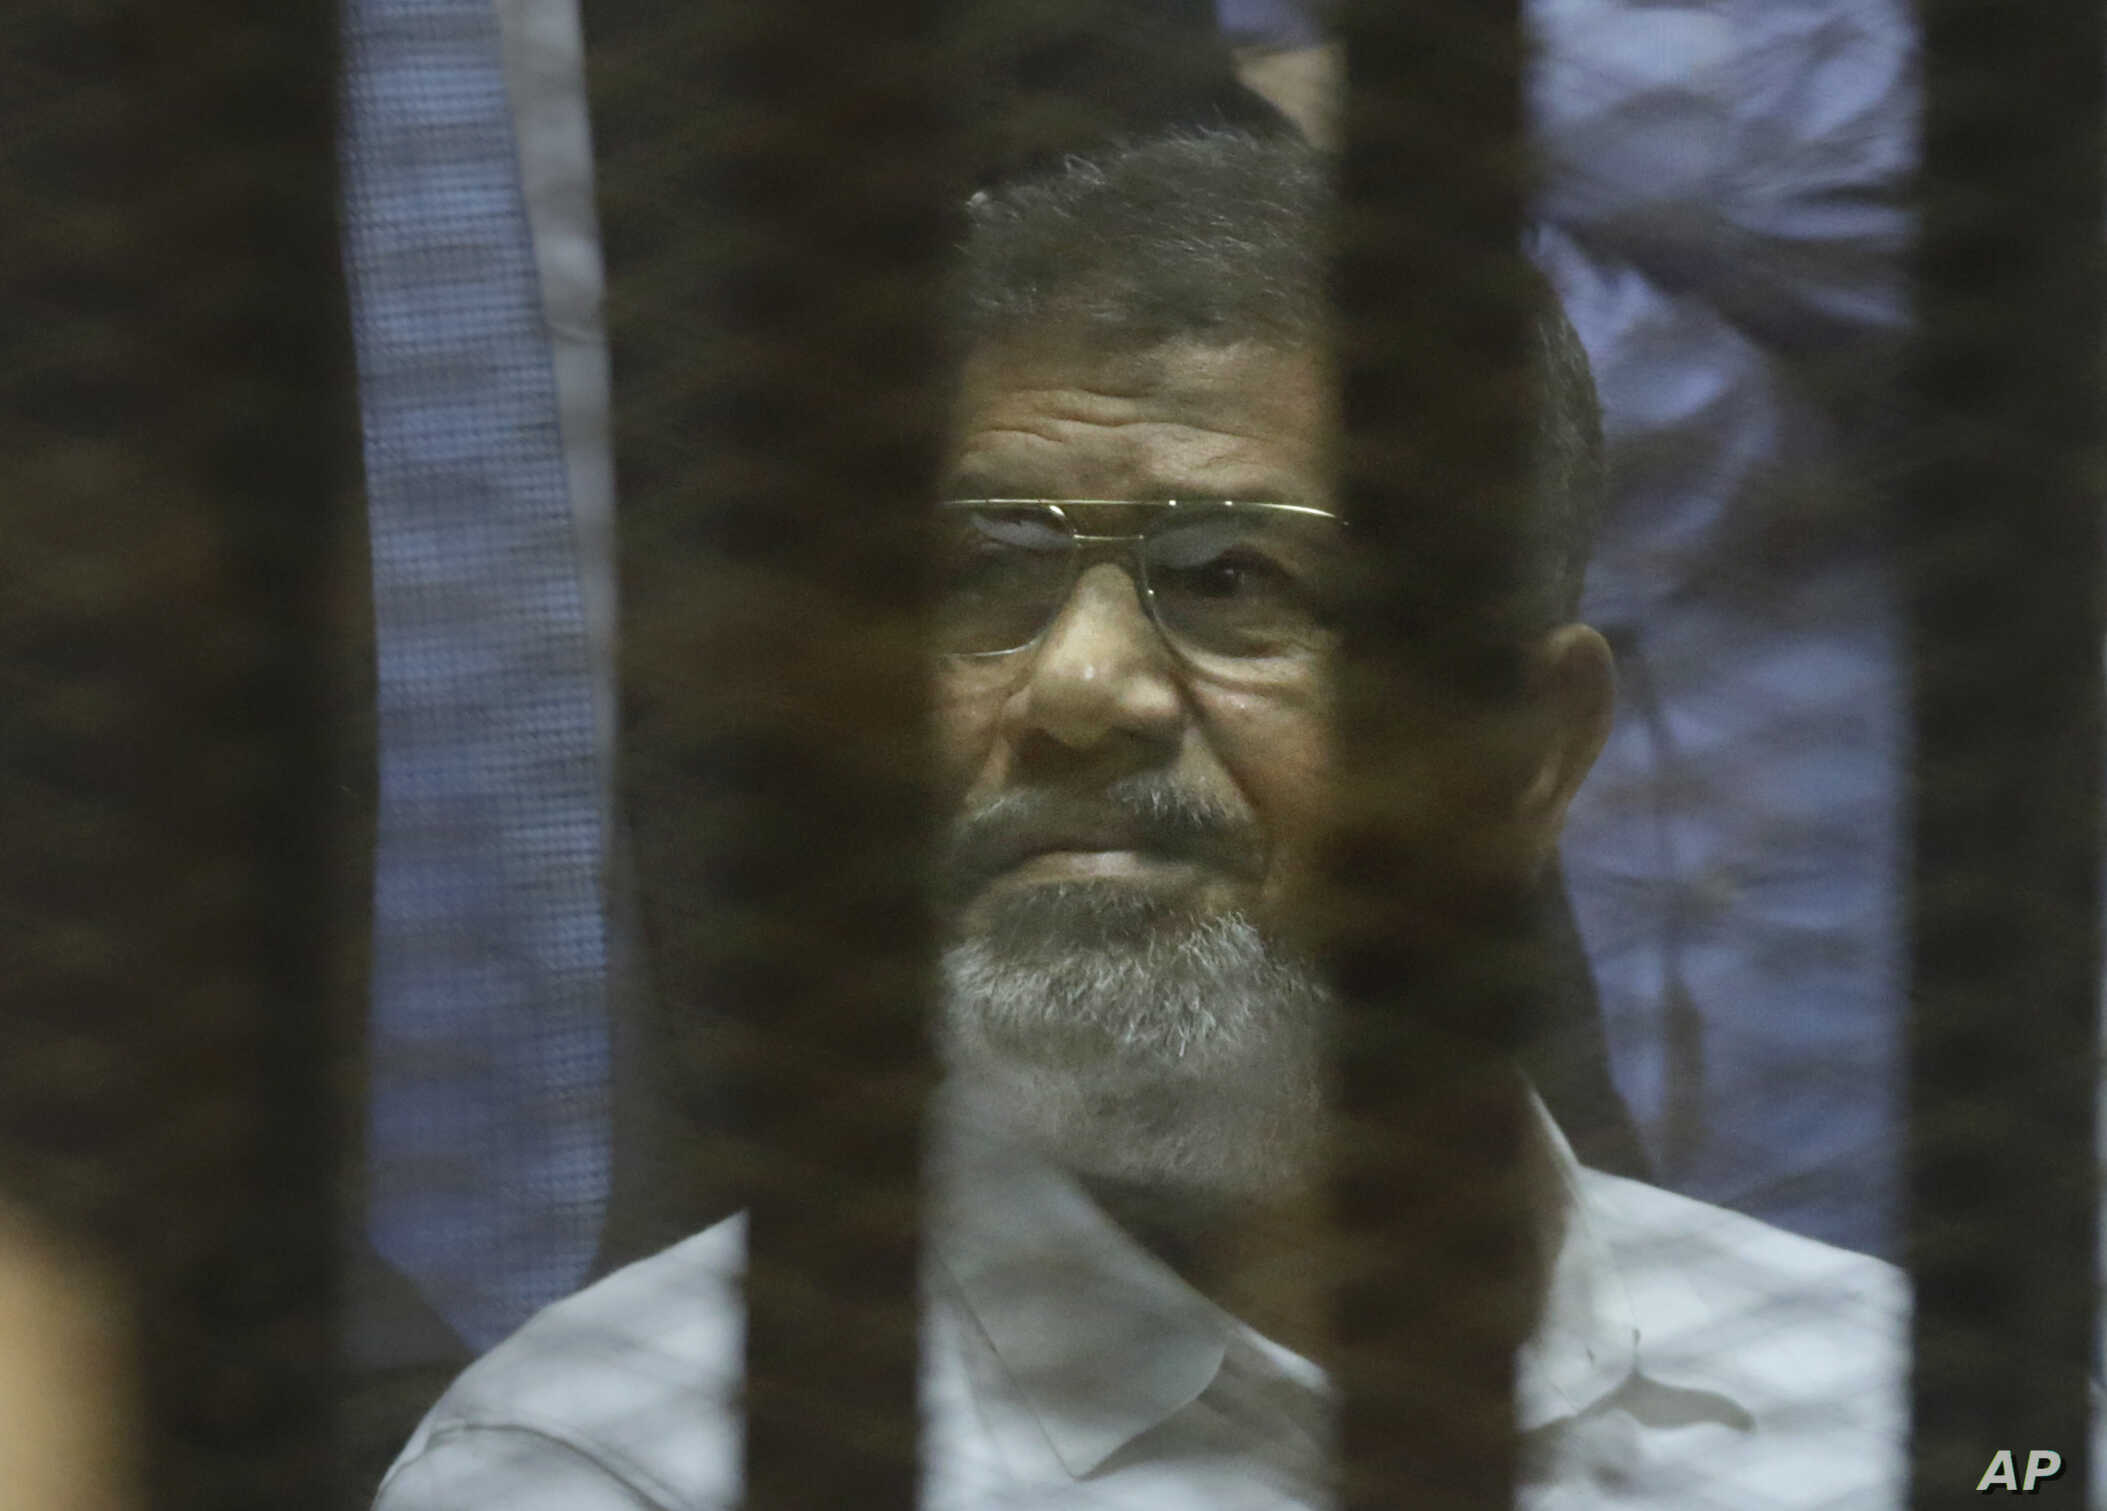 Egypt's ousted Islamist President Mohammed Morsi sits in a soundproof glass cage inside a makeshift courtroom at Egypt's national police academy in Cairo, Egypt, April 21, 2015.